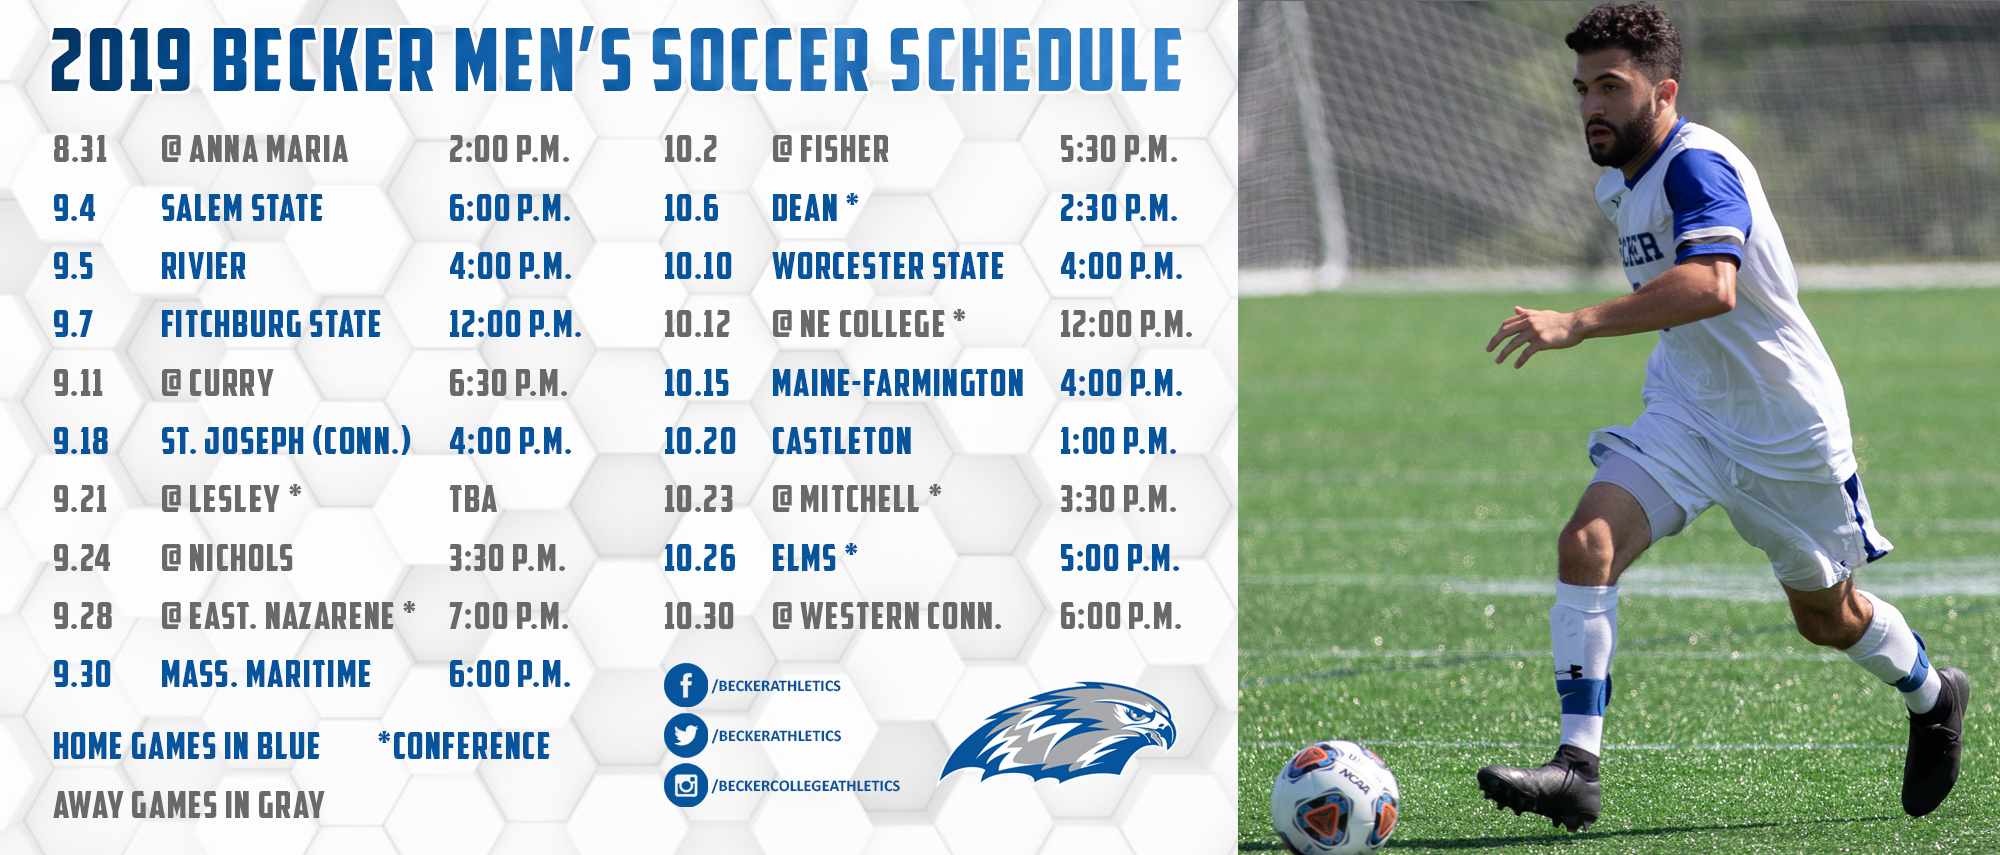 2019 Becker Men's Soccer Schedule